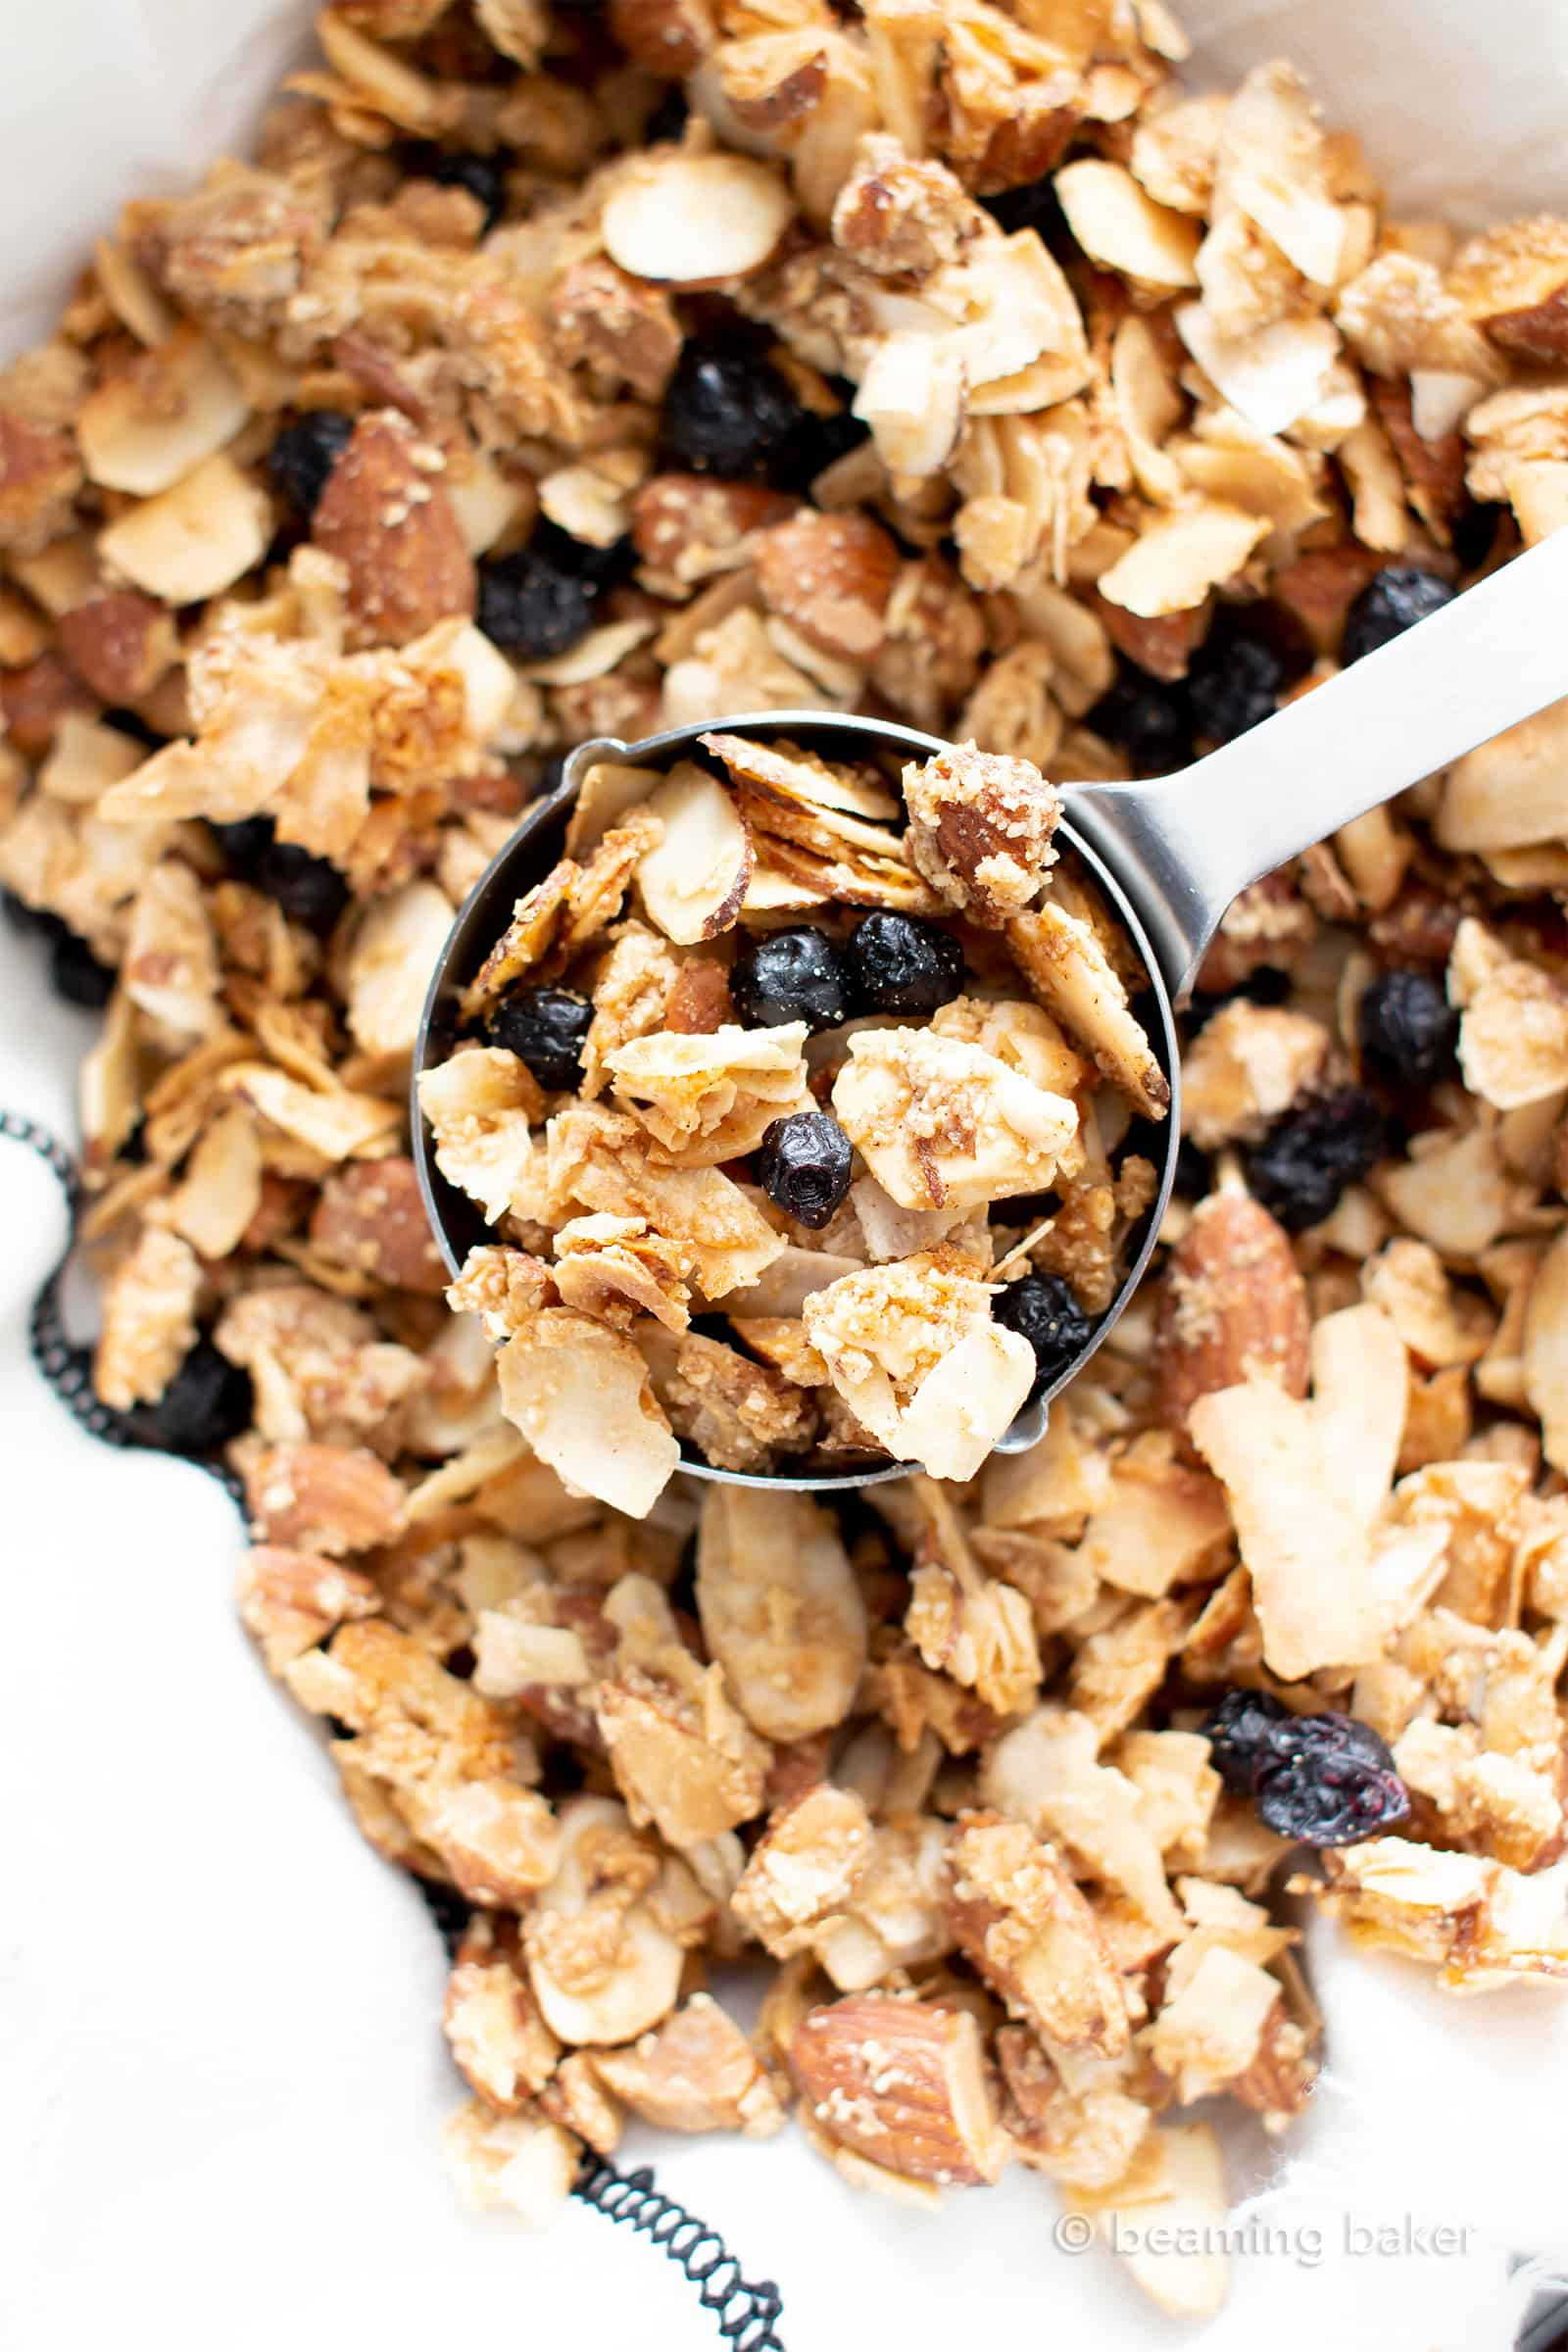 Paleo Vegan Granola (V, GF): a 5 ingredient recipe for sunny blueberry almond granola—crispy, crunchy clusters bursting with almonds & blueberries. The best healthy vegan breakfast recipe! #Vegan #Paleo #Granola #GlutenFree | Recipe at BeamingBaker.com